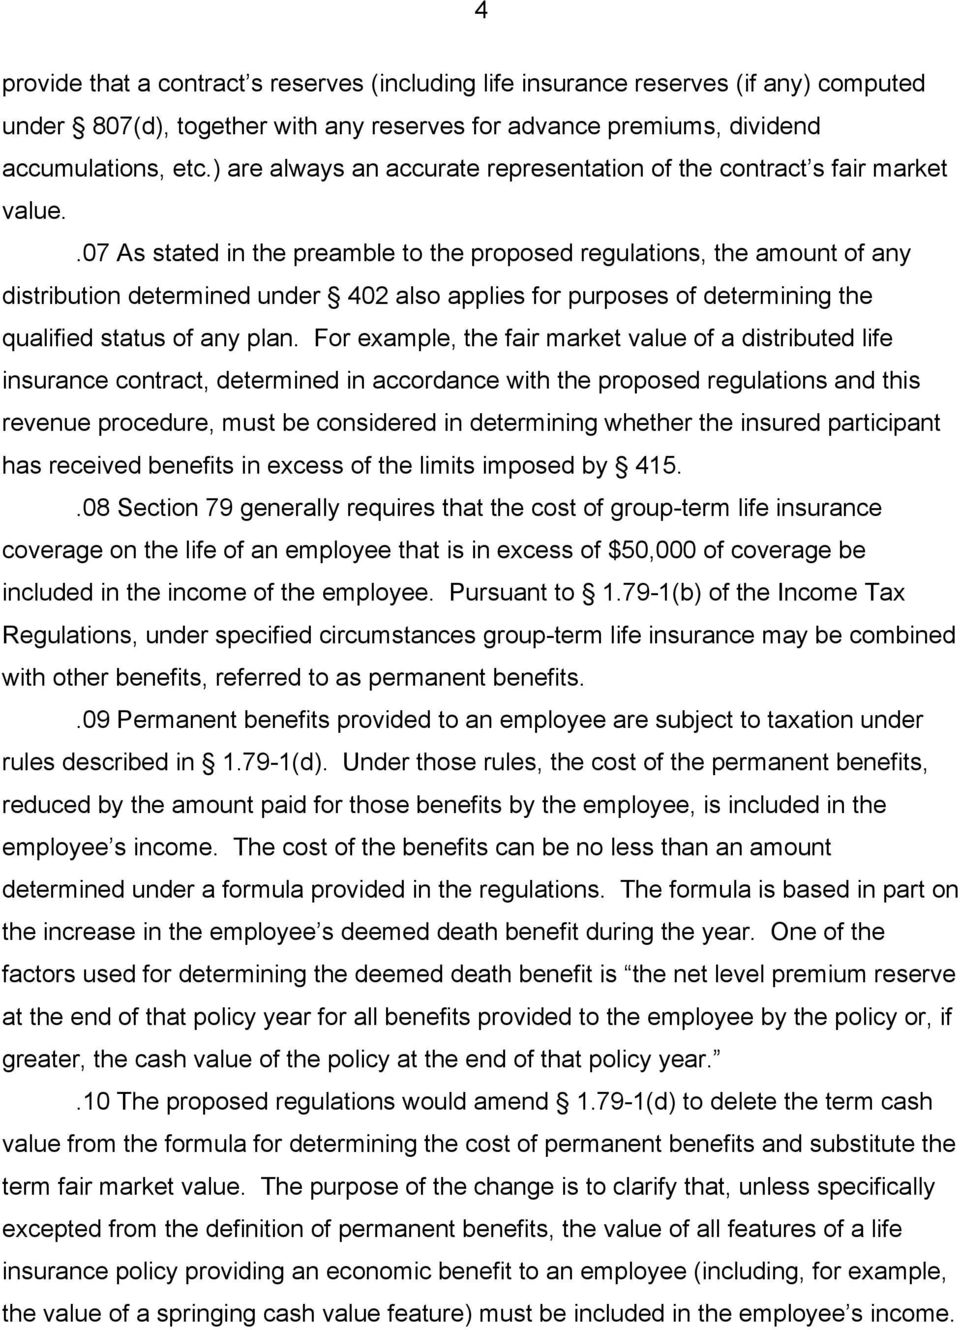 .07 As stated in the preamble to the proposed regulations, the amount of any distribution determined under 402 also applies for purposes of determining the qualified status of any plan.